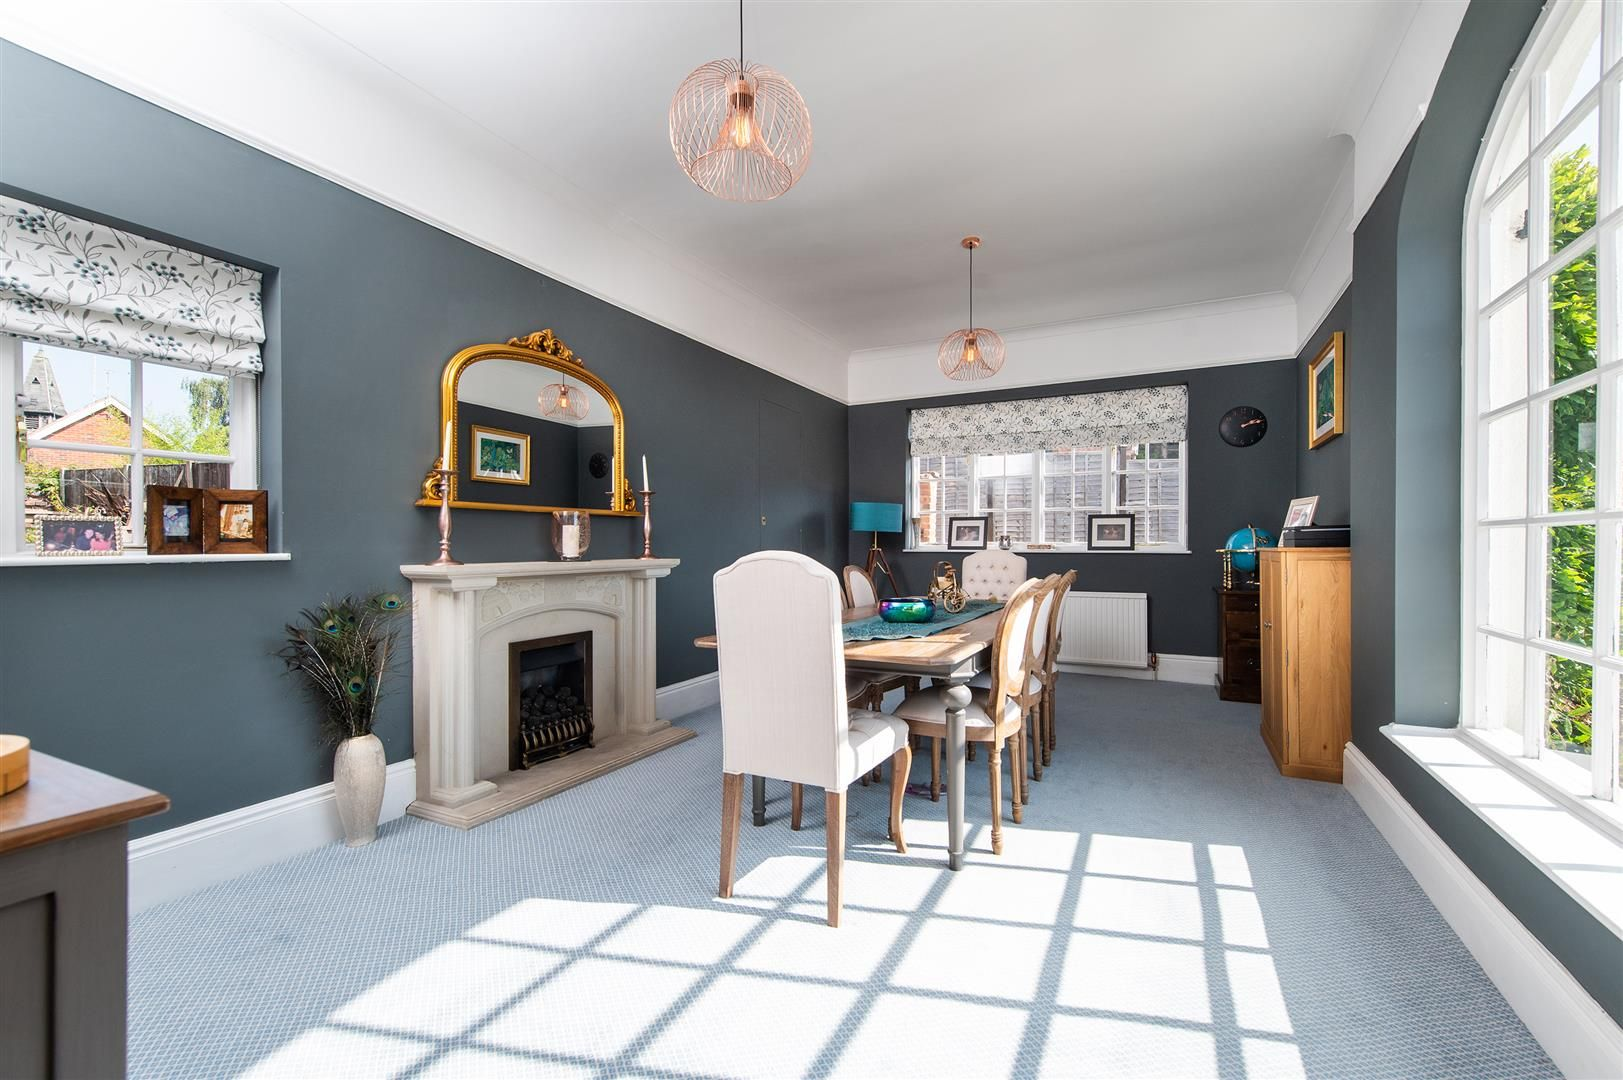 4 bed detached for sale in Blakedown 16